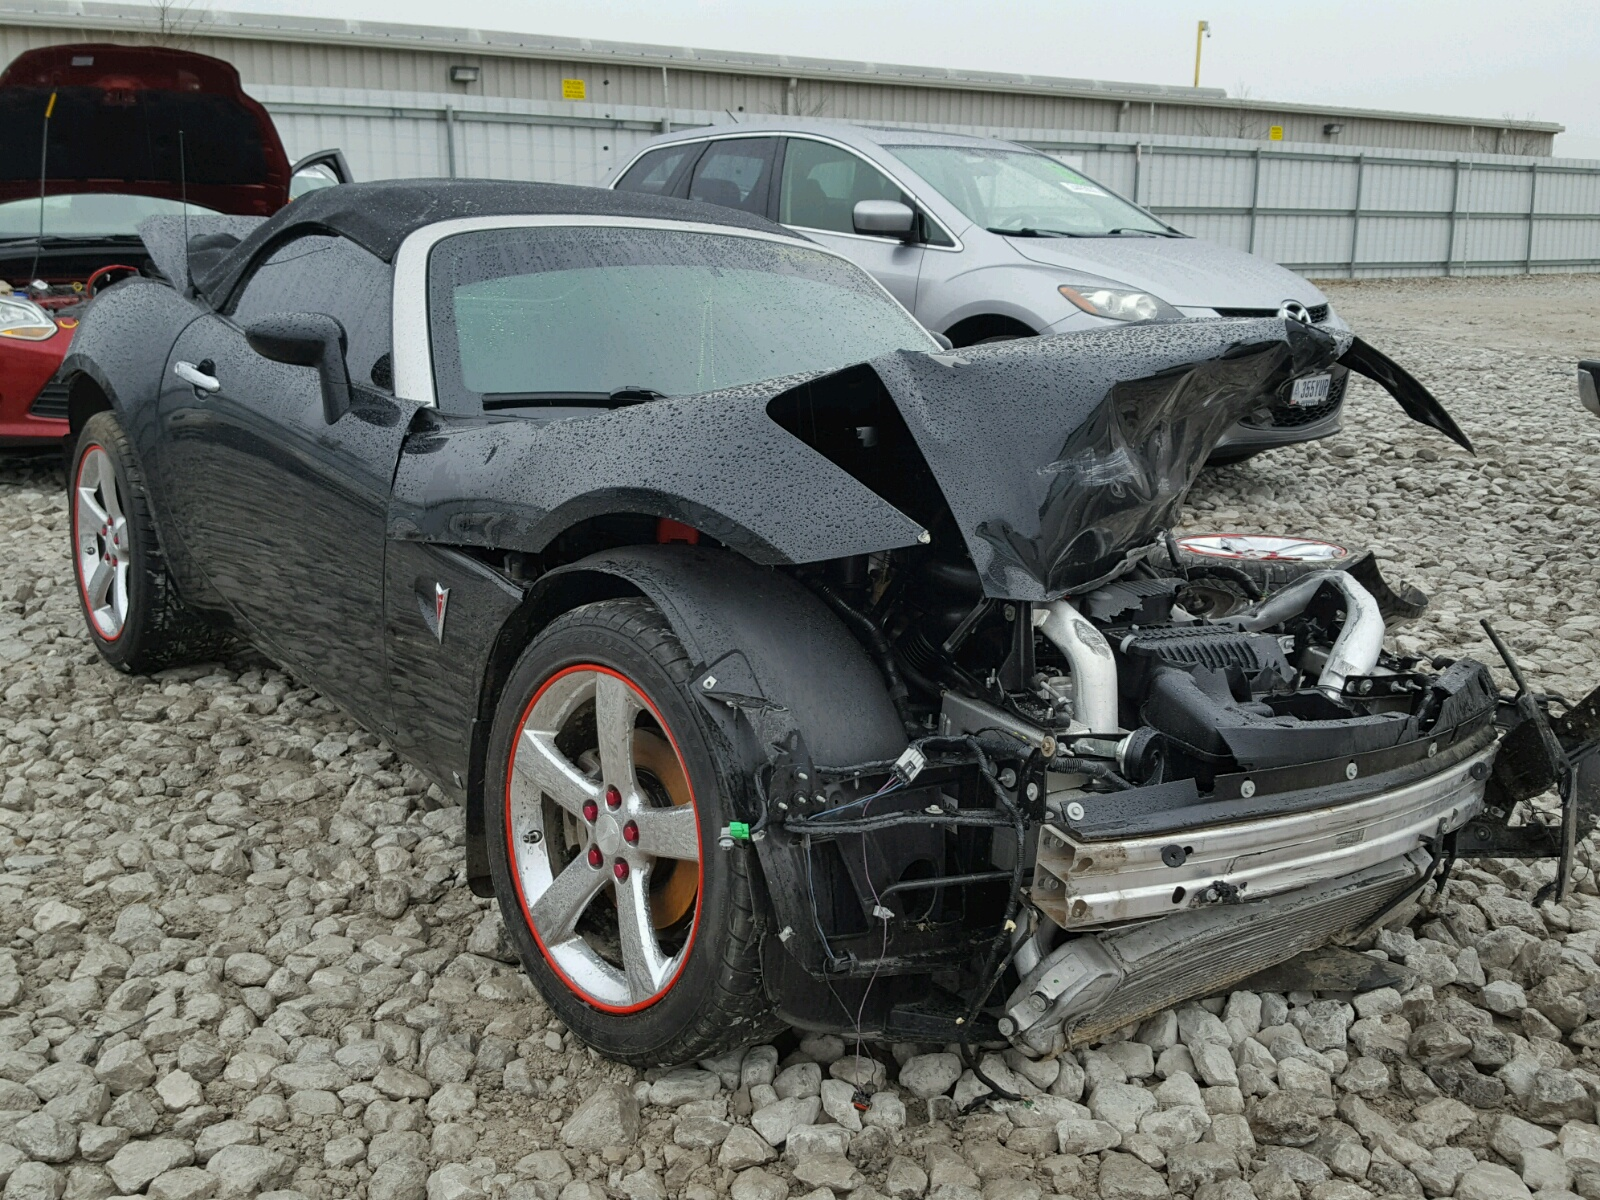 For Sale Northern California 2006 Pontiac Solstice 2 4l: Auto Auction Ended On VIN: 1G2MN35B29Y103096 2009 PONTIAC